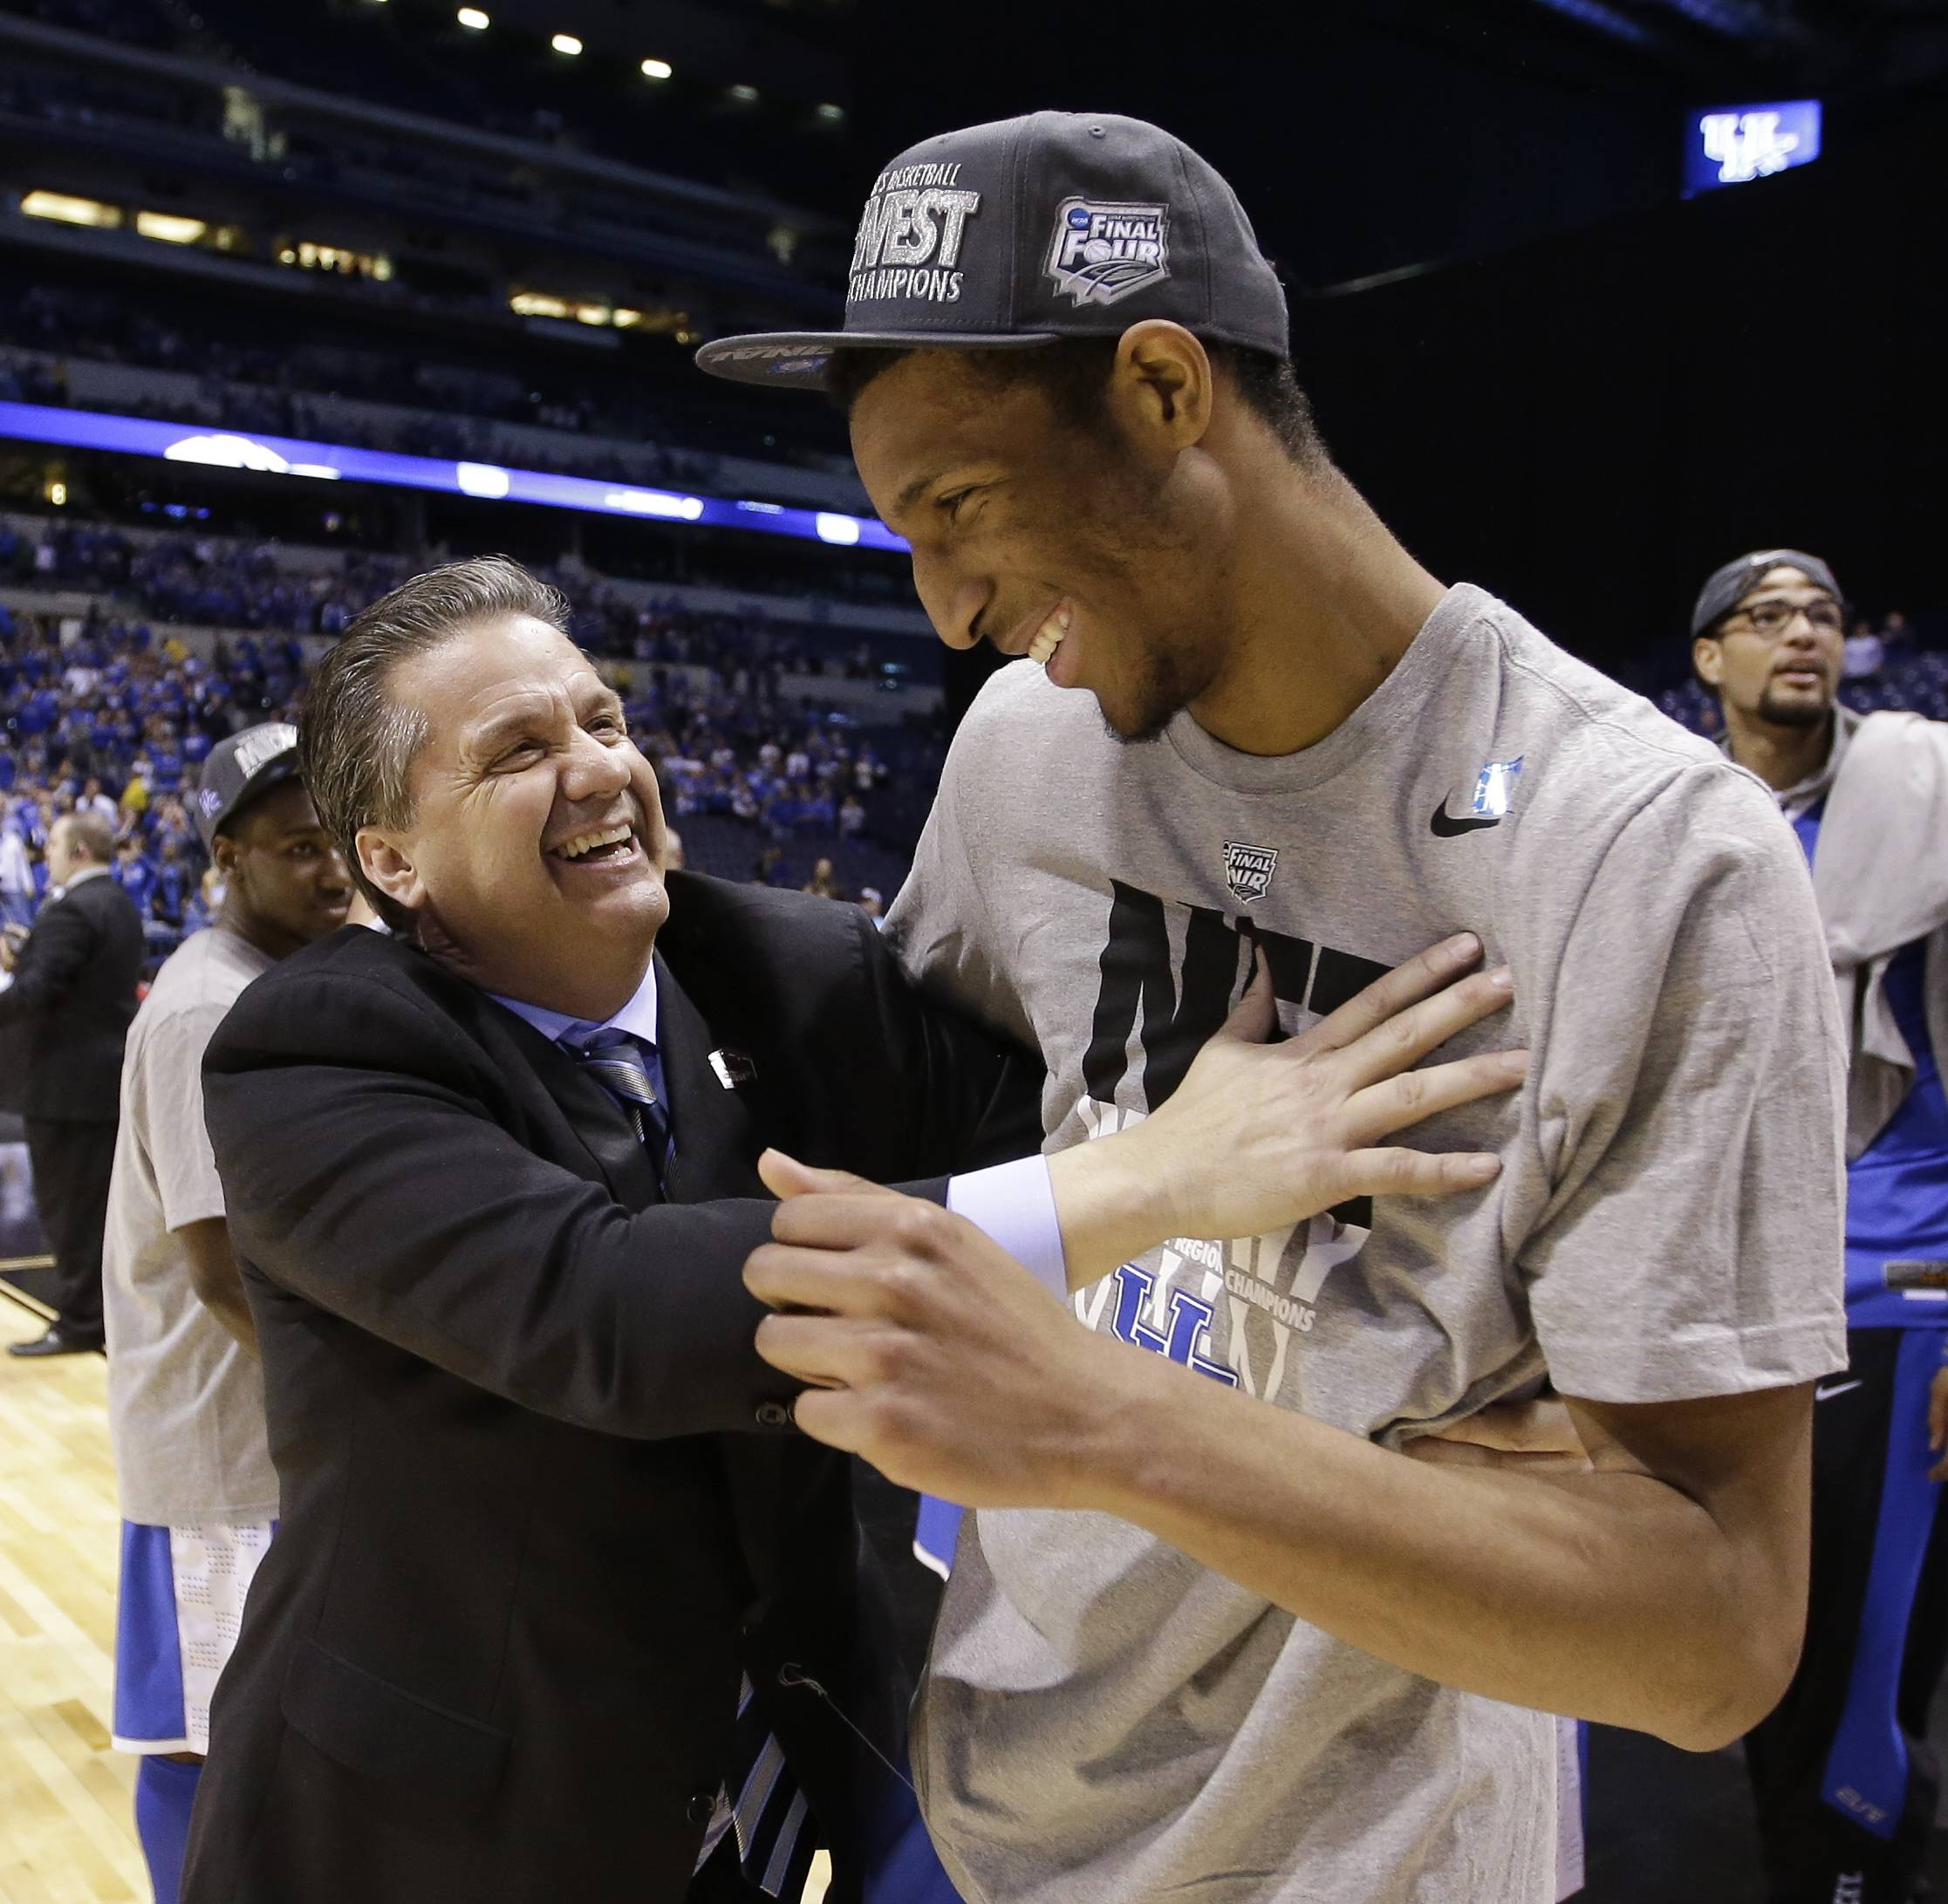 Kentucky head coach John Calipari, left, celebrates with Marcus Lee after an NCAA Midwest Regional final college basketball tournament game Sunday, March 30, 2014, in Indianapolis. Kentucky won 75-72 to advance to the Final Four.